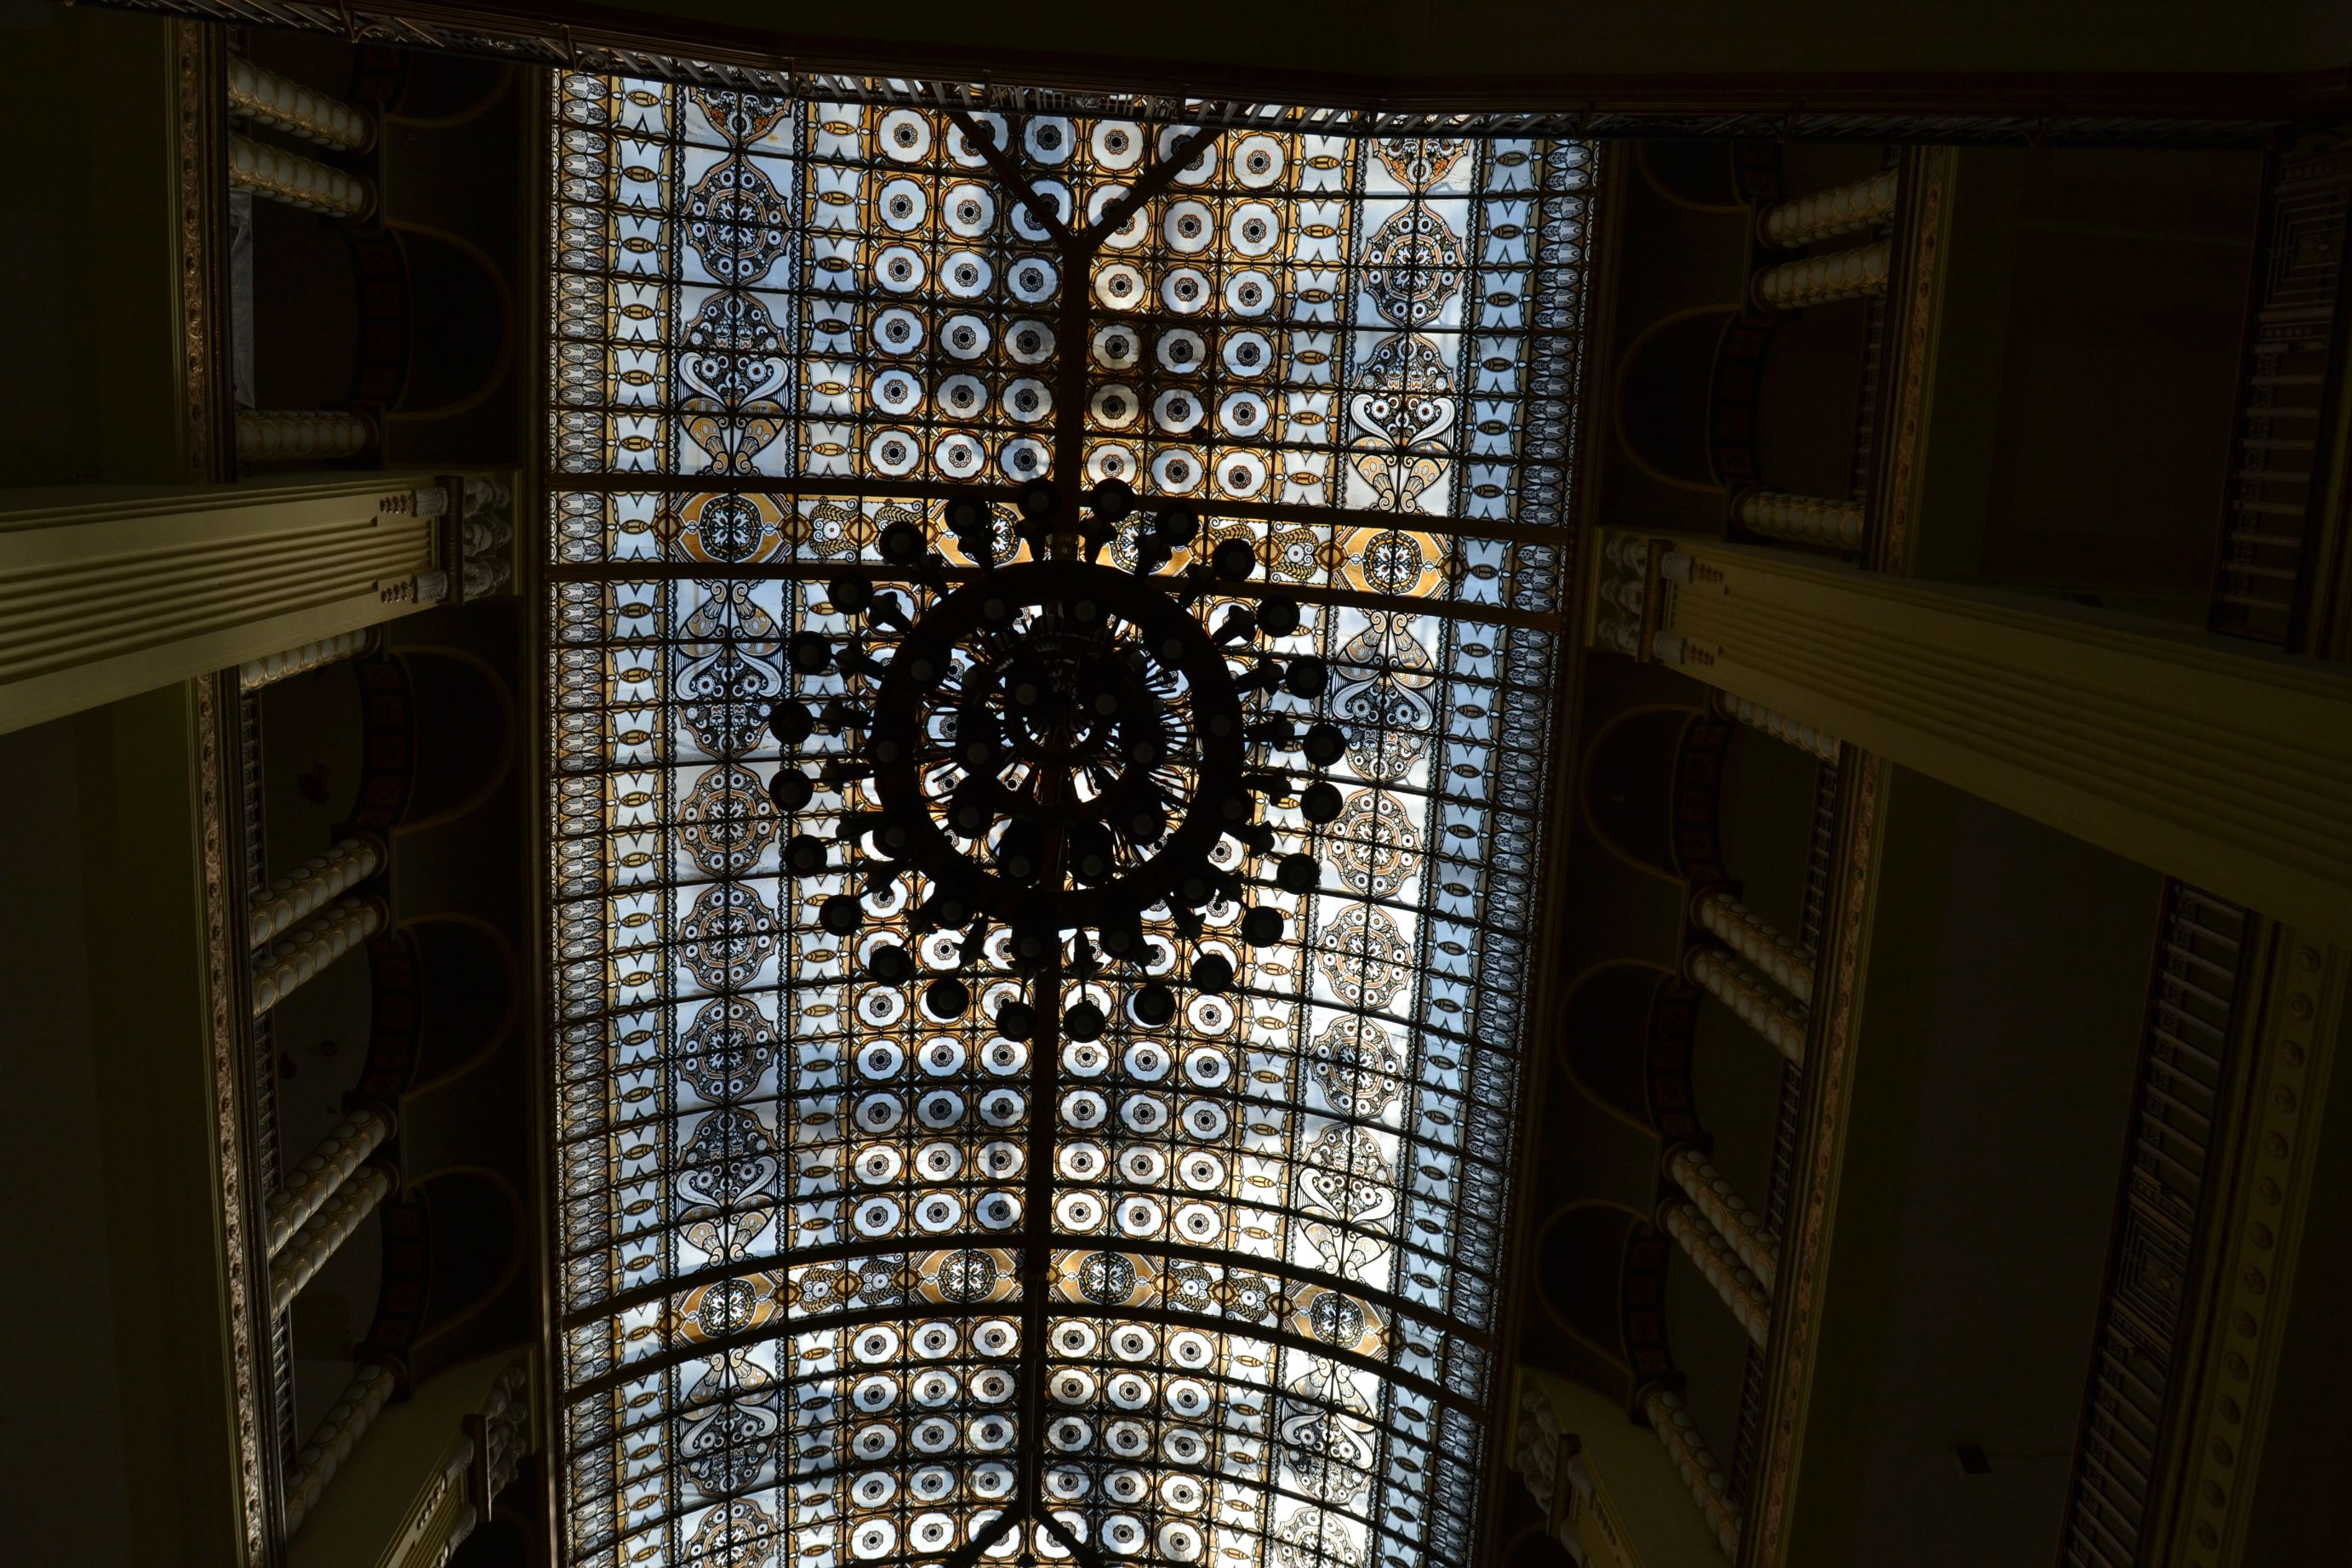 The amazing glass ceiling